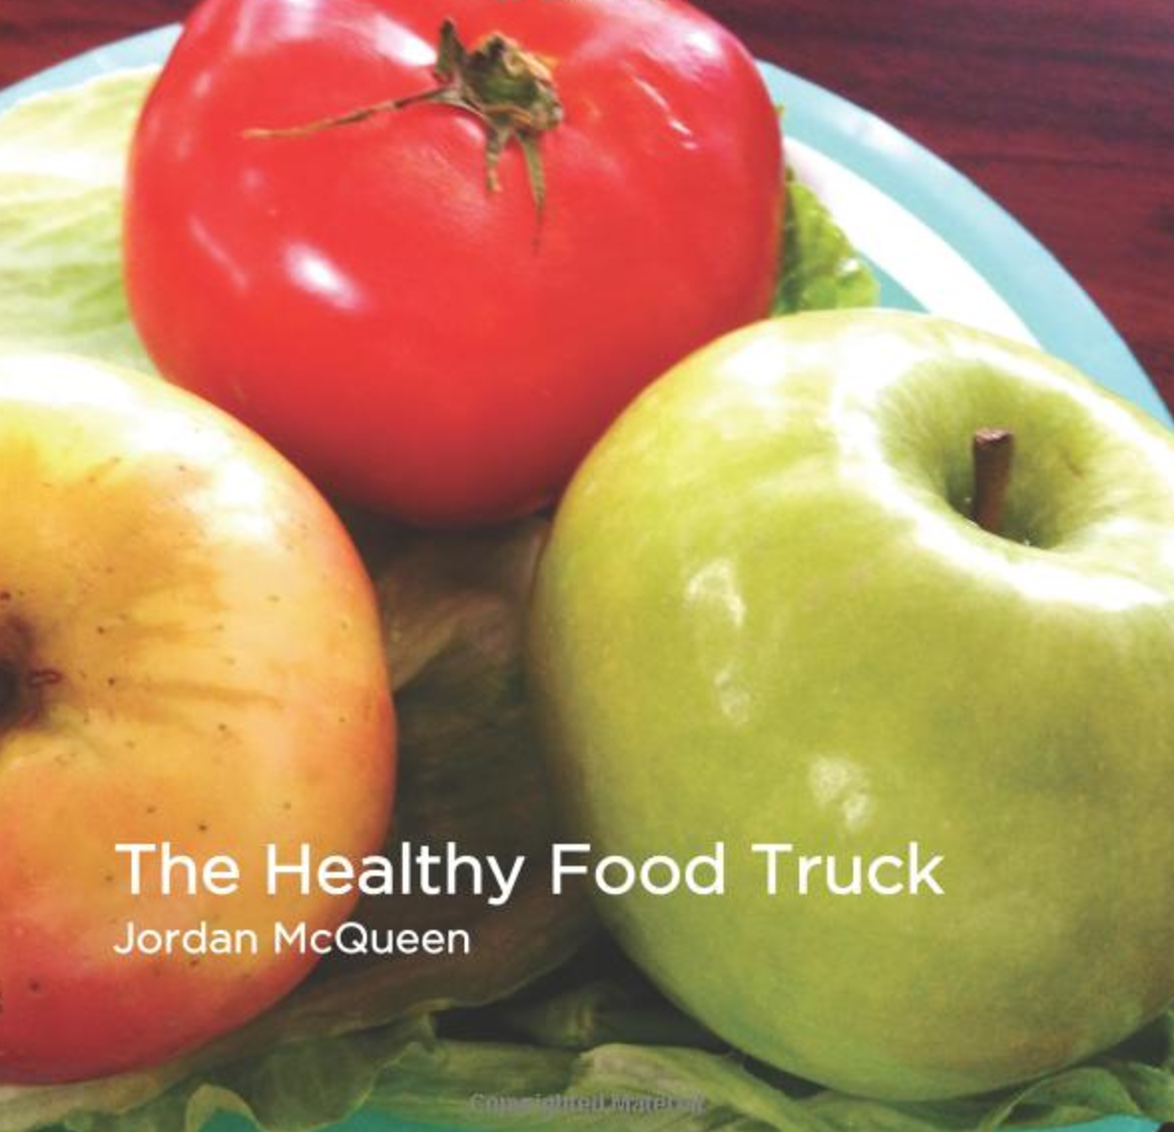 The Healthy Food Truck   Jordan McQueen has a dream of running a healthy food truck. But first, what ingredients should he use? What food should he cook? Join him on a delicious reading adventure as he dreams up his scrumptious healthy food truck!   Buy this book.